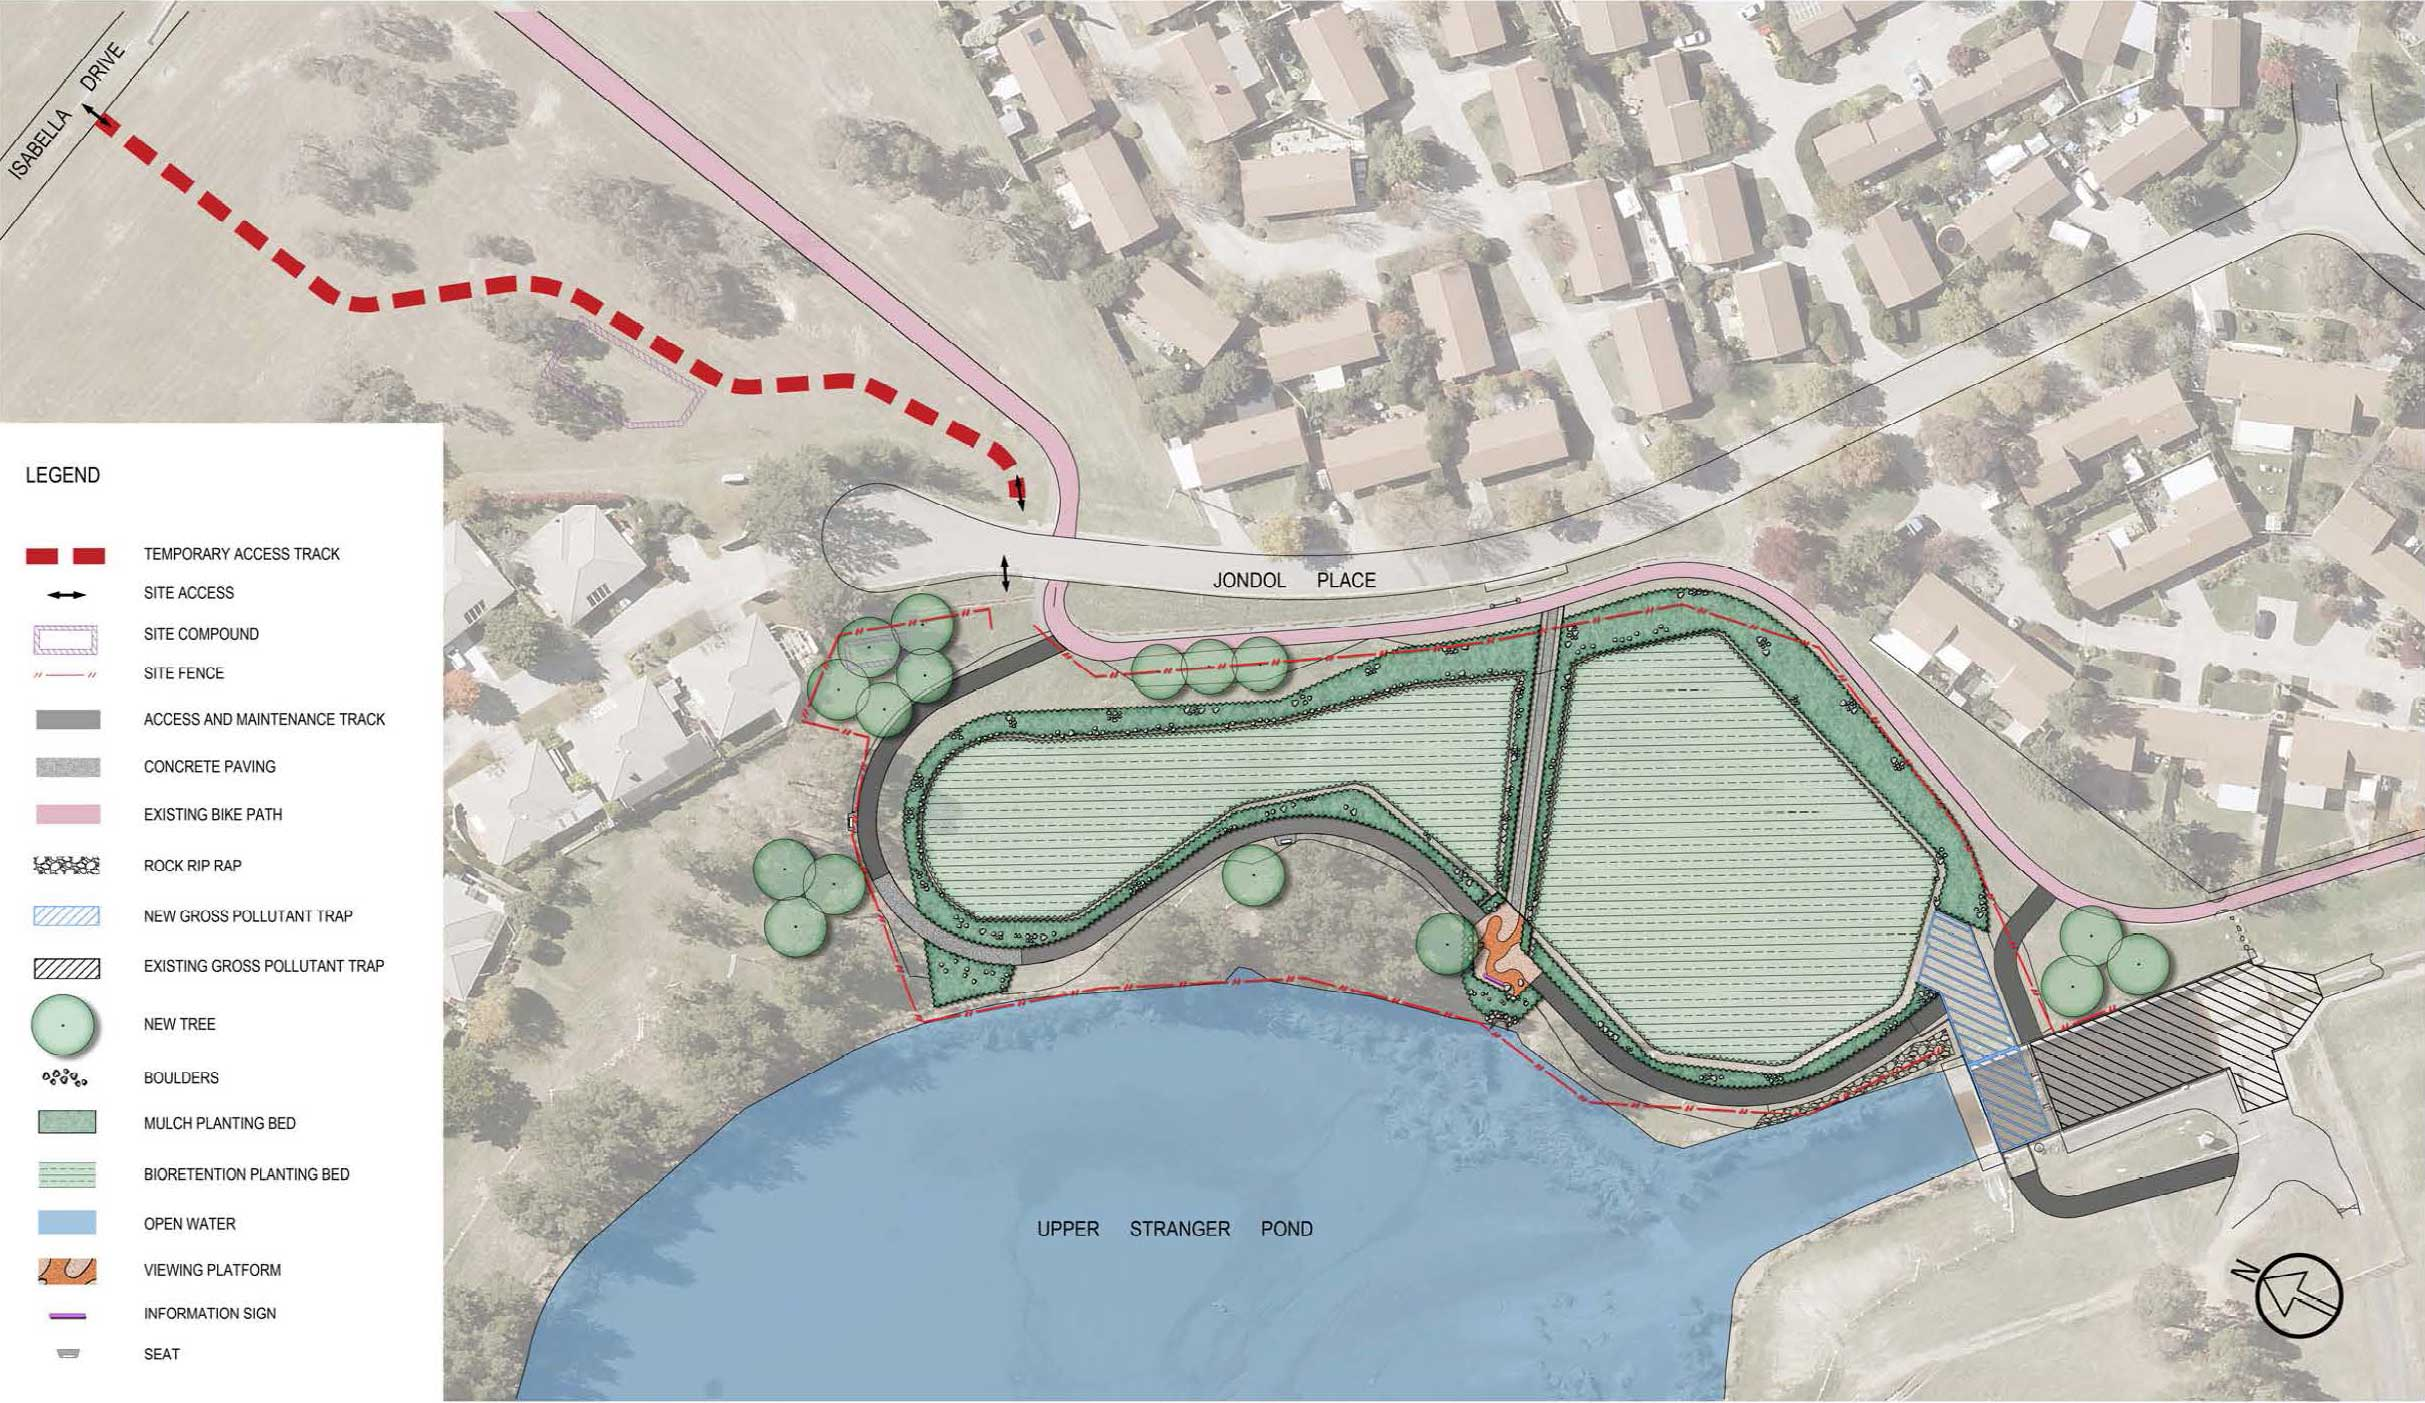 Rain garden landscape design for Upper Stranger Pond